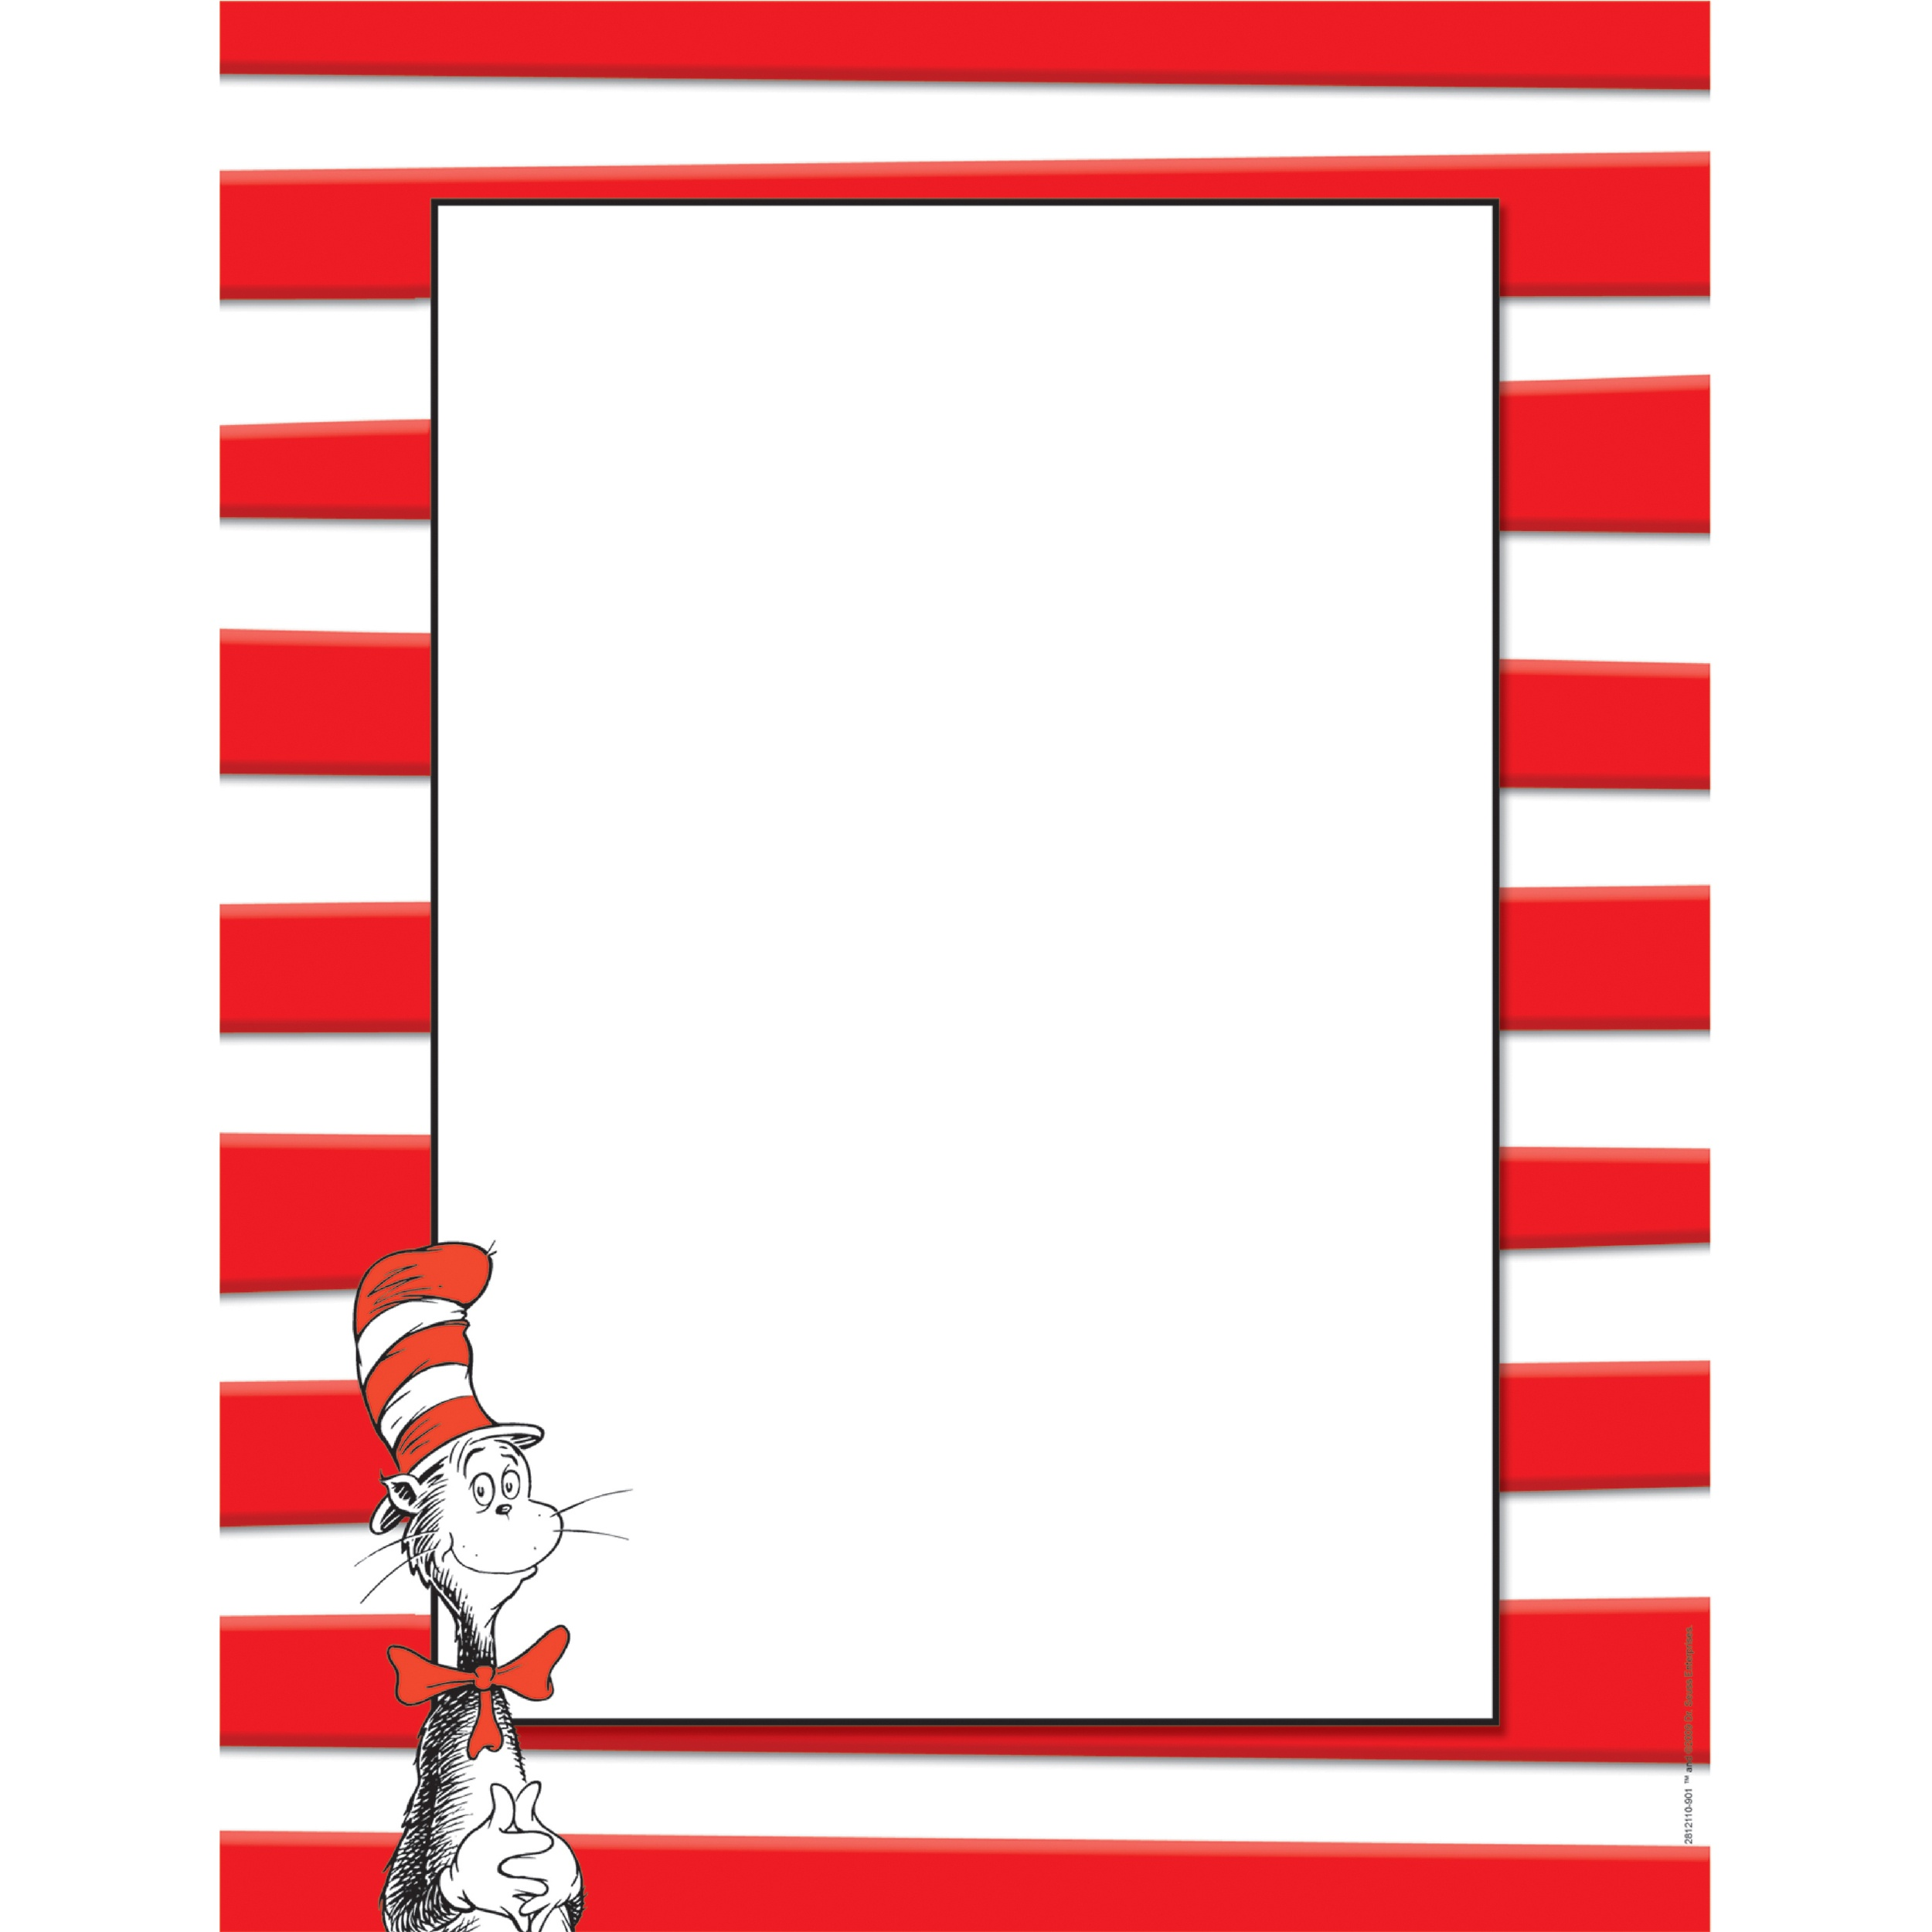 Dr Seuss Page Border | Free Download Best Dr Seuss Page Border On - Dr Seuss Free Printable Templates